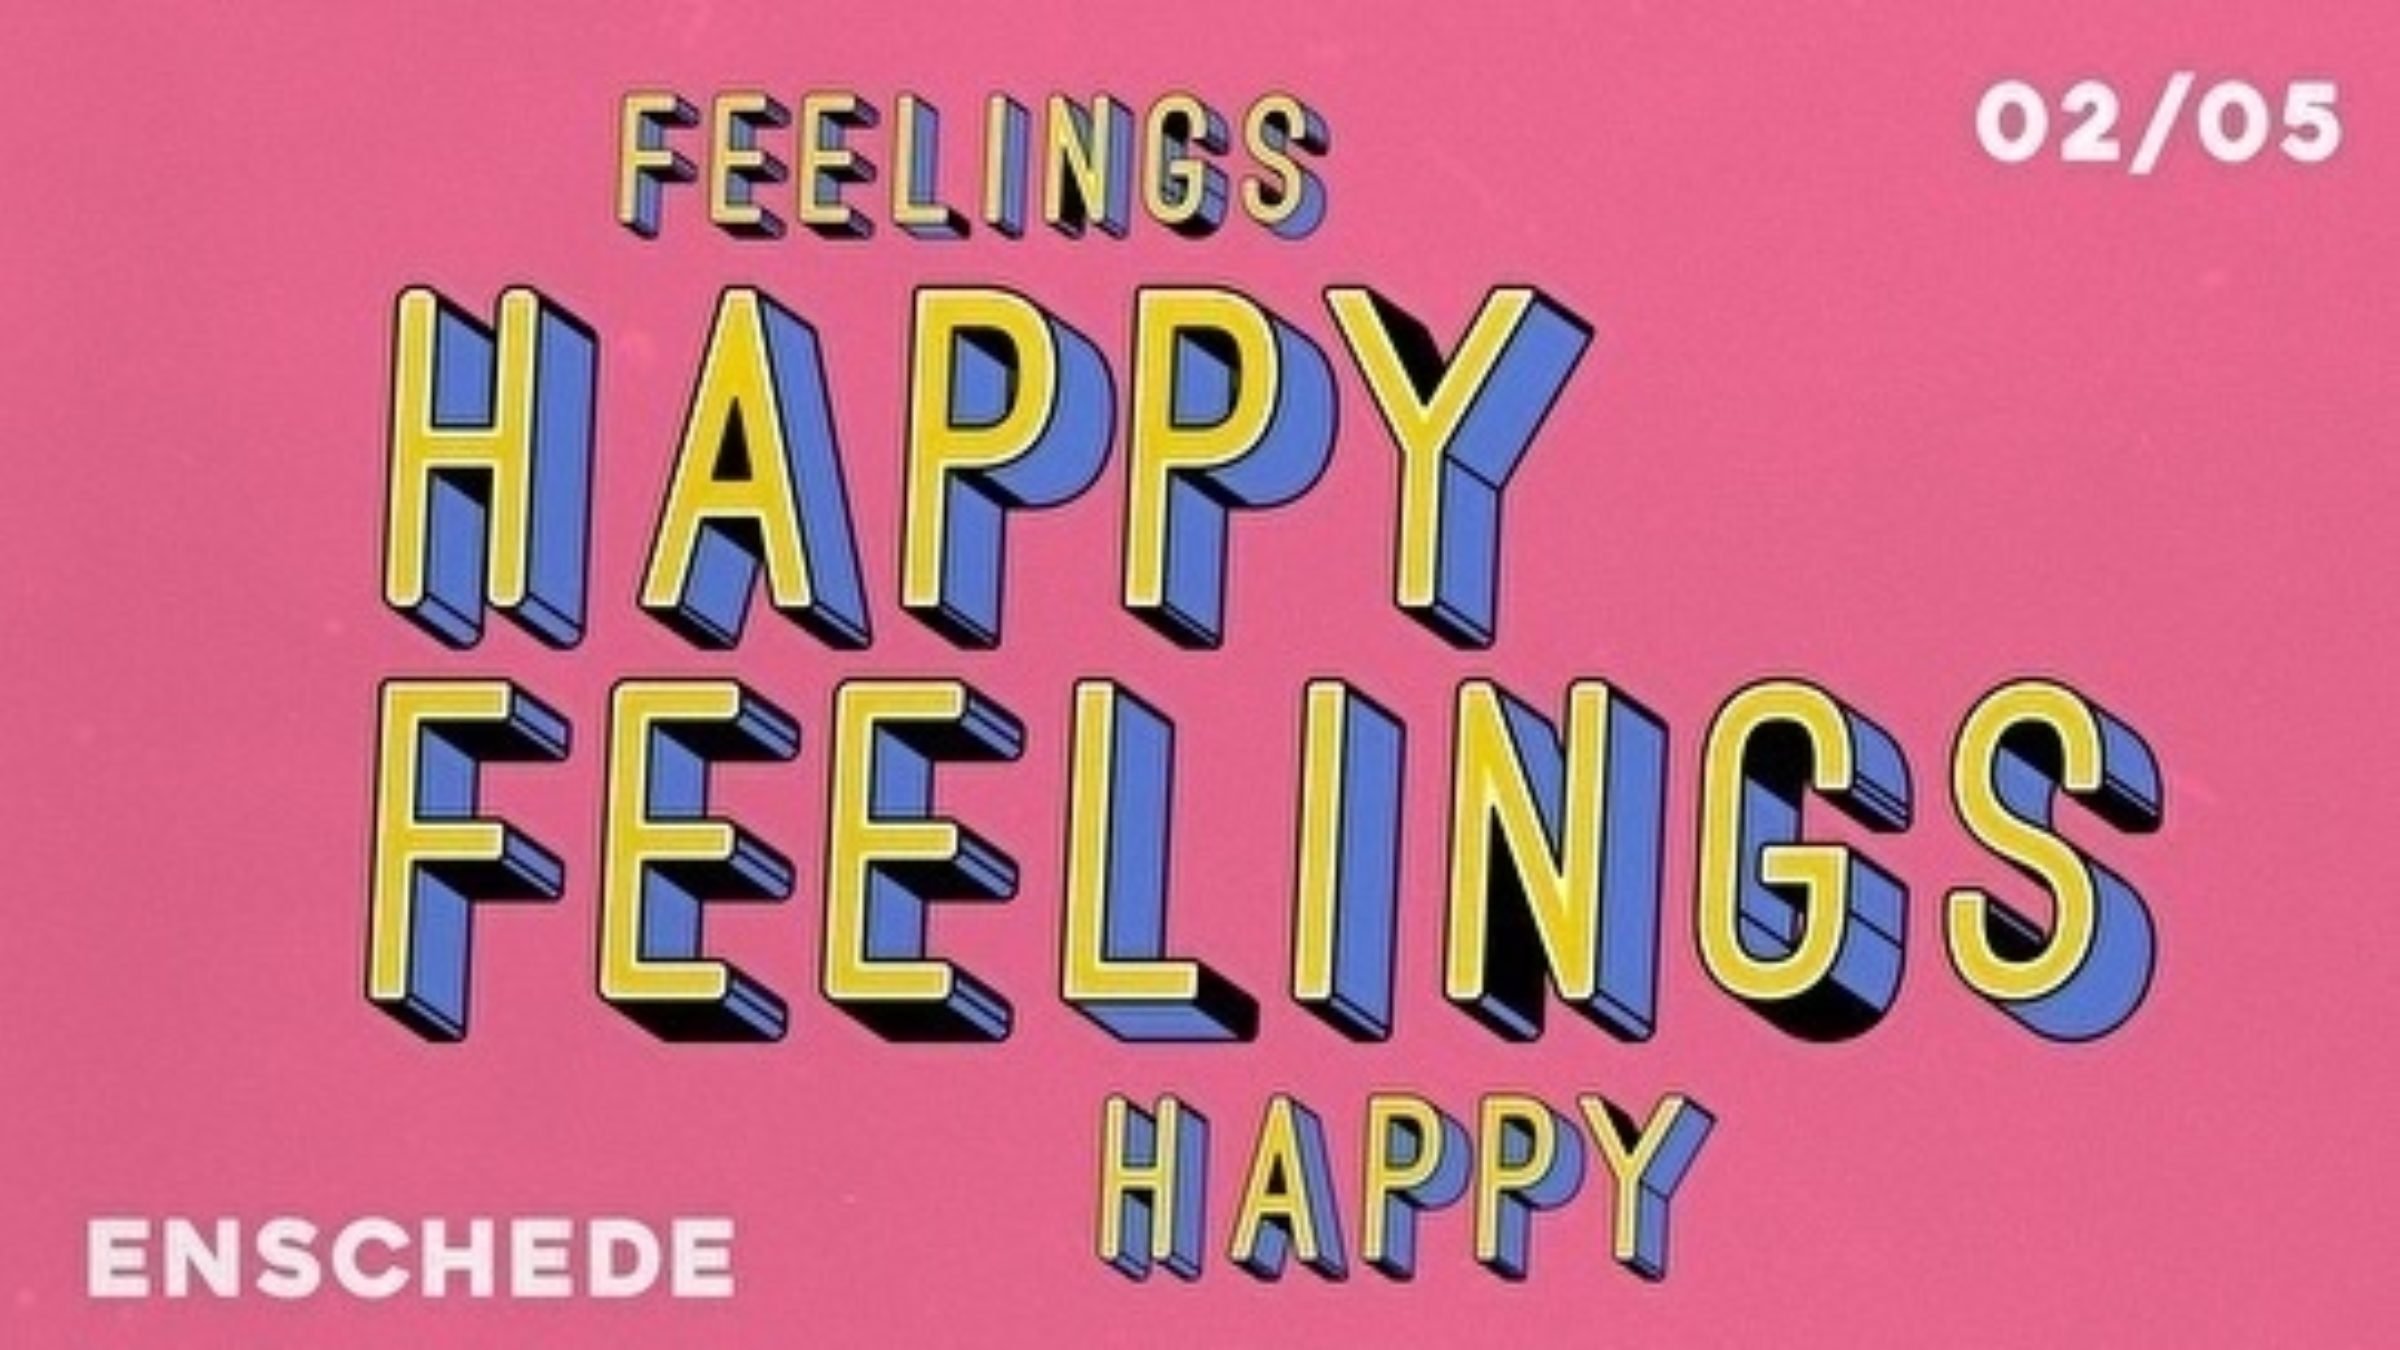 Happy Feelings 3930 1582635902 35i1yaq23b